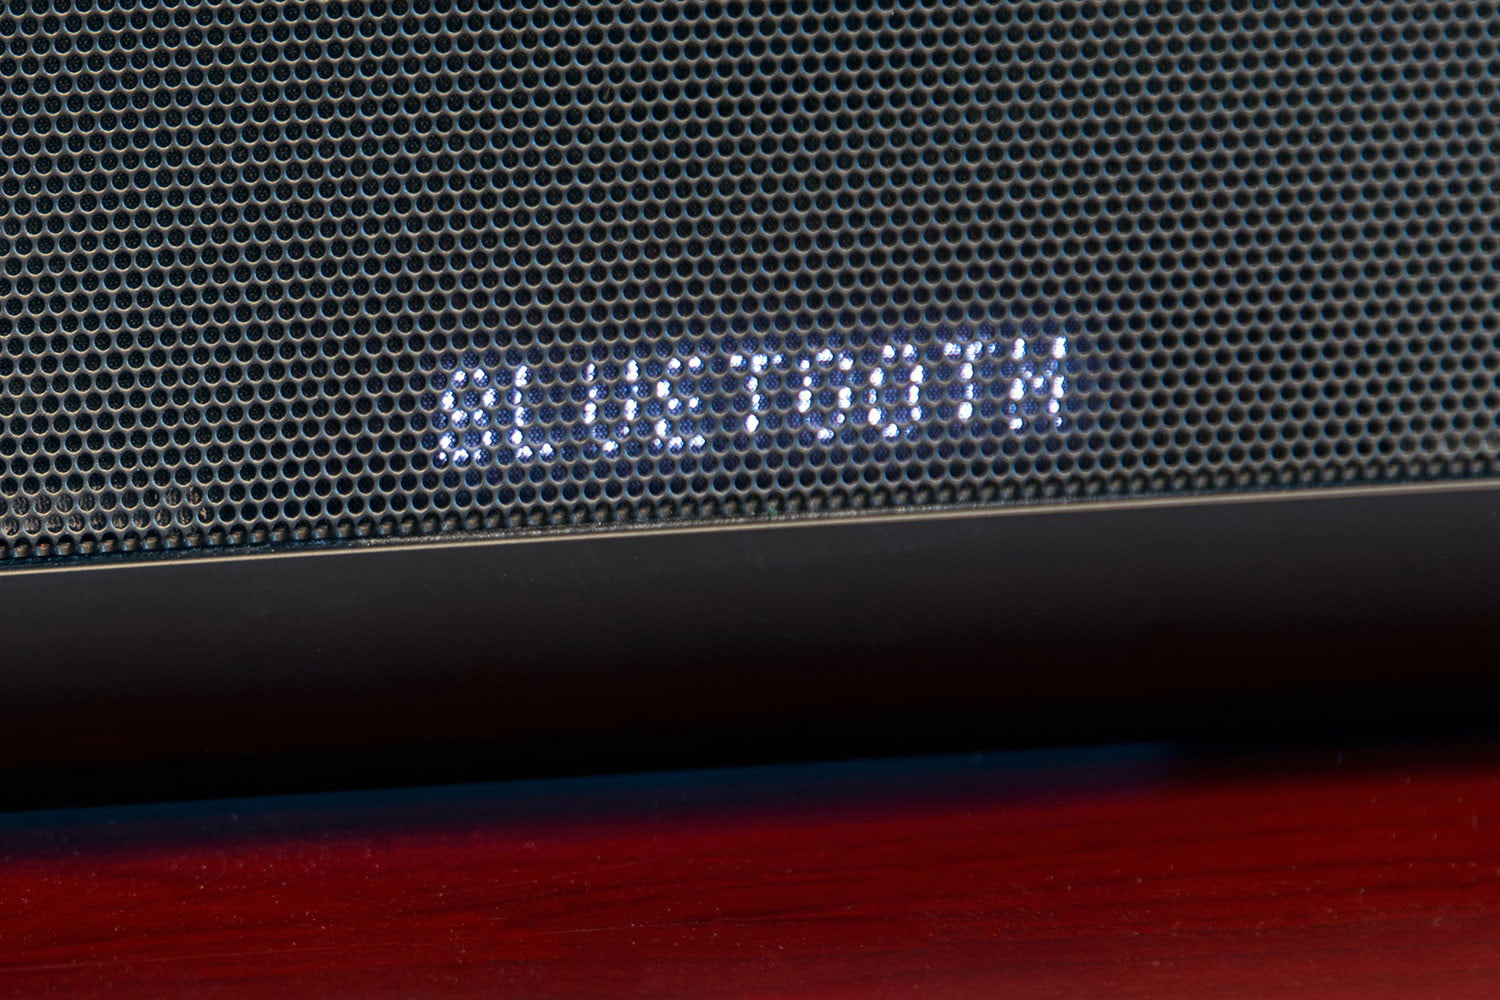 Yamaha Ysp 5600 Review Atmos Dts X Sound Bar Digital Trends Surround What To Expect When Wiring Your Home For The 21st Soundbar